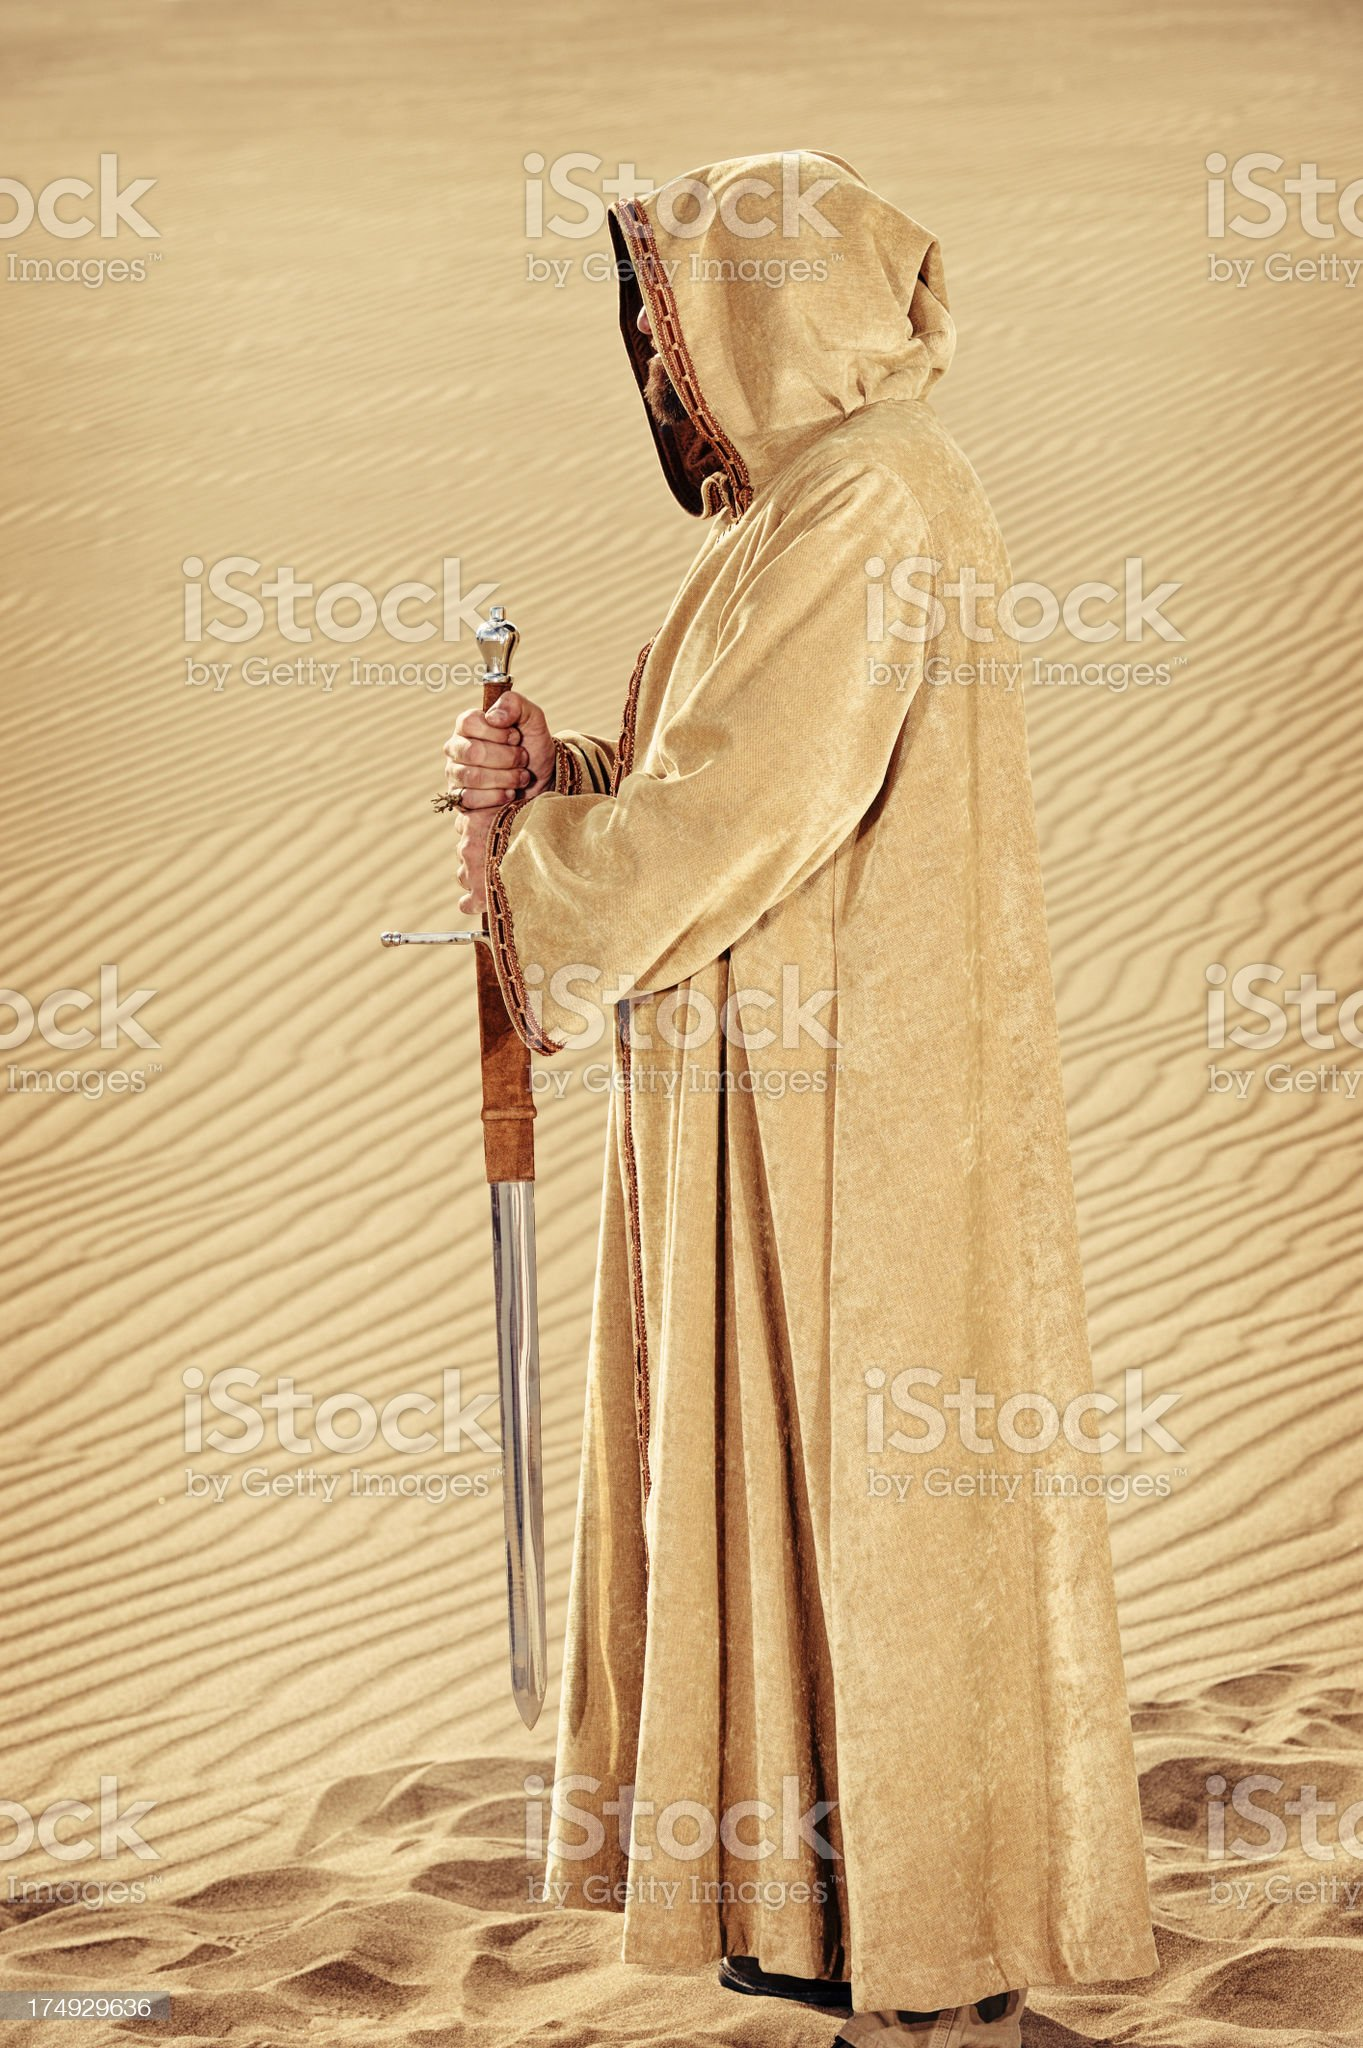 King In Hooded Robe Holding His Sword - Sand Background royalty-free stock photo